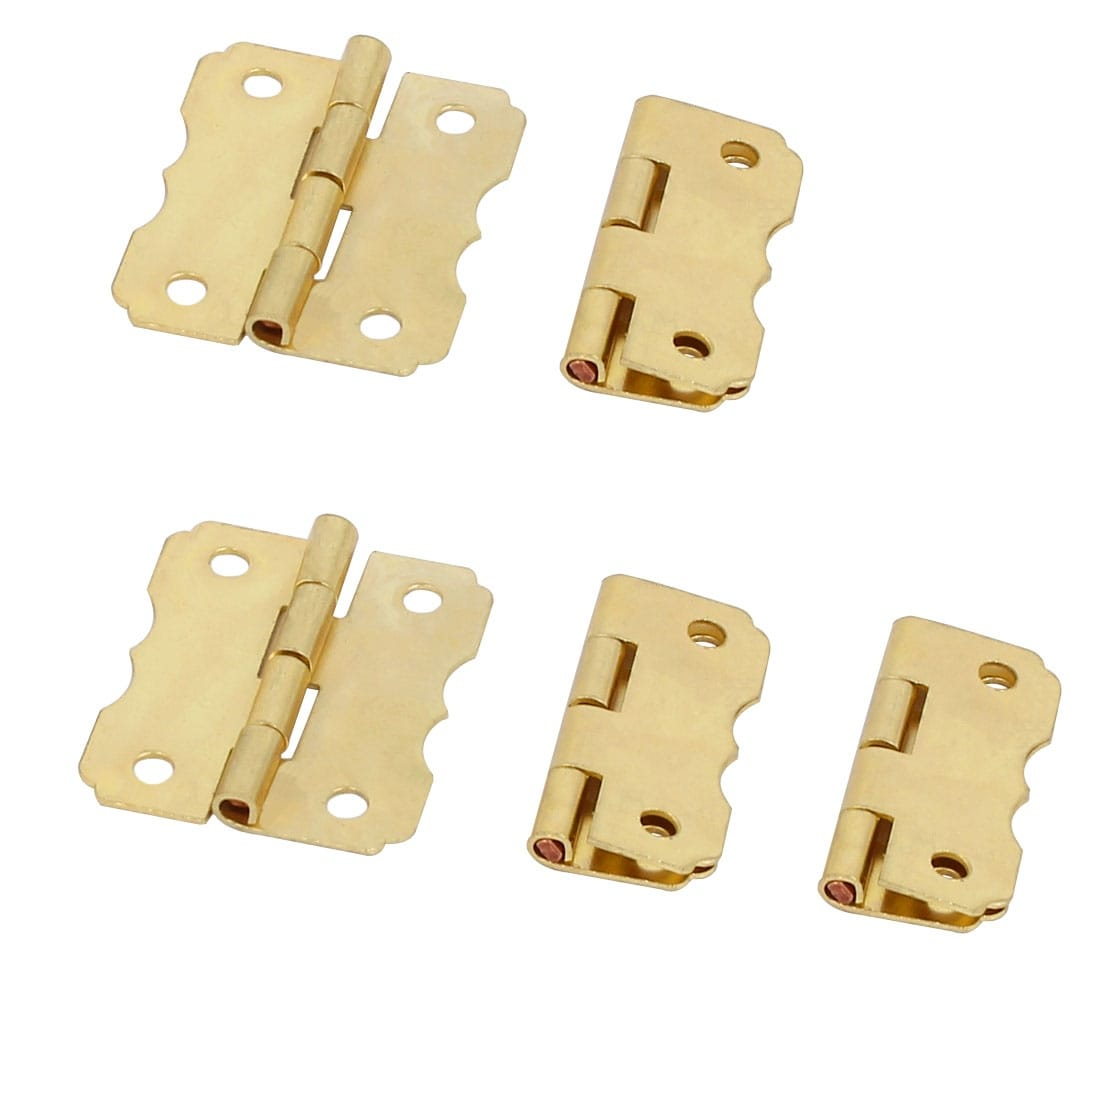 Cosmetic Box Wooden Case Metal Butt Hinges Gold Tone 30mm Length 5pcs